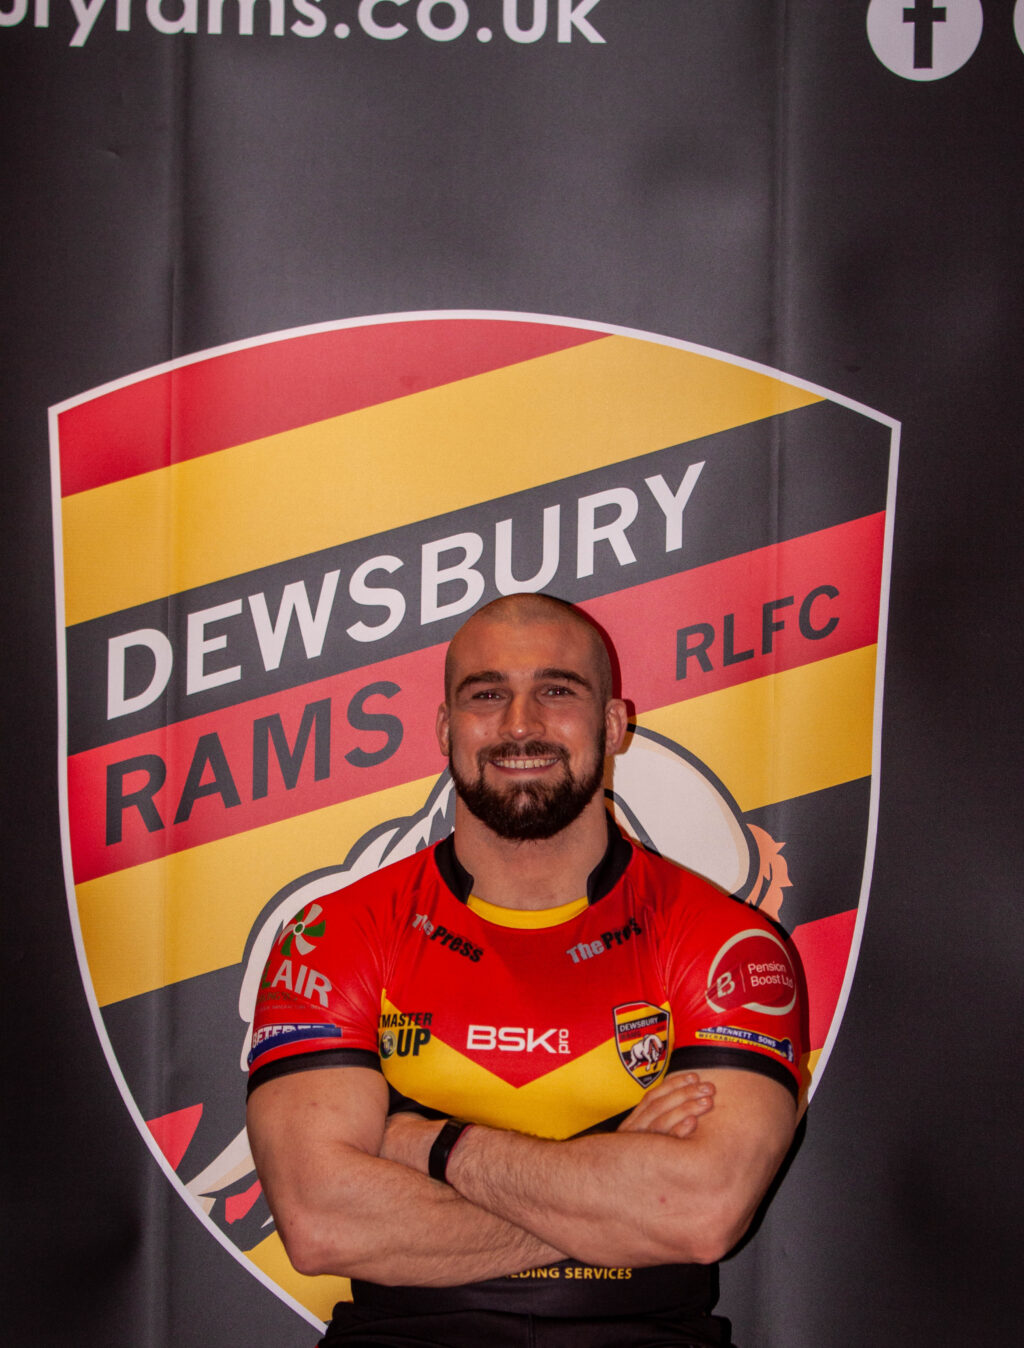 Ryder- It's a special squad at Dewsbury